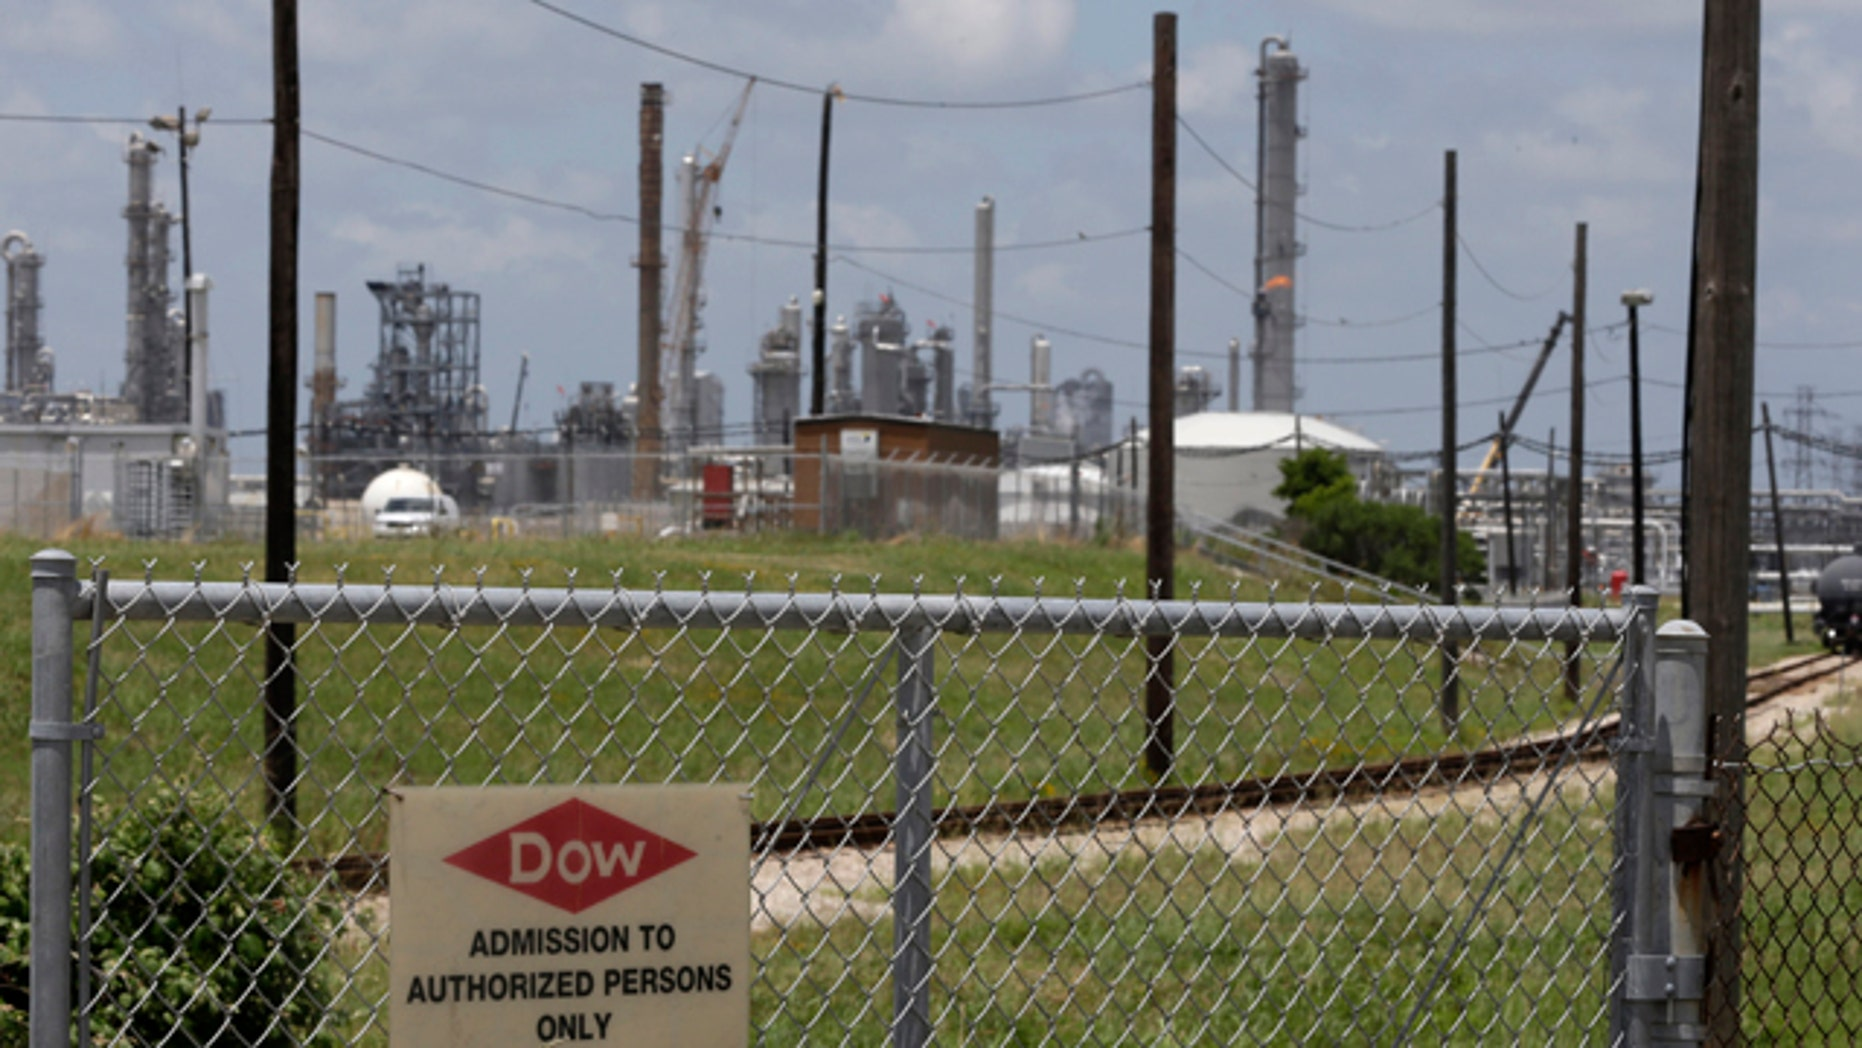 May 22, 2014: A sign is posted on a roadside fence outside a Dow Chemicals plant in Freeport, Texas. (AP Photo/Pat Sullivan)